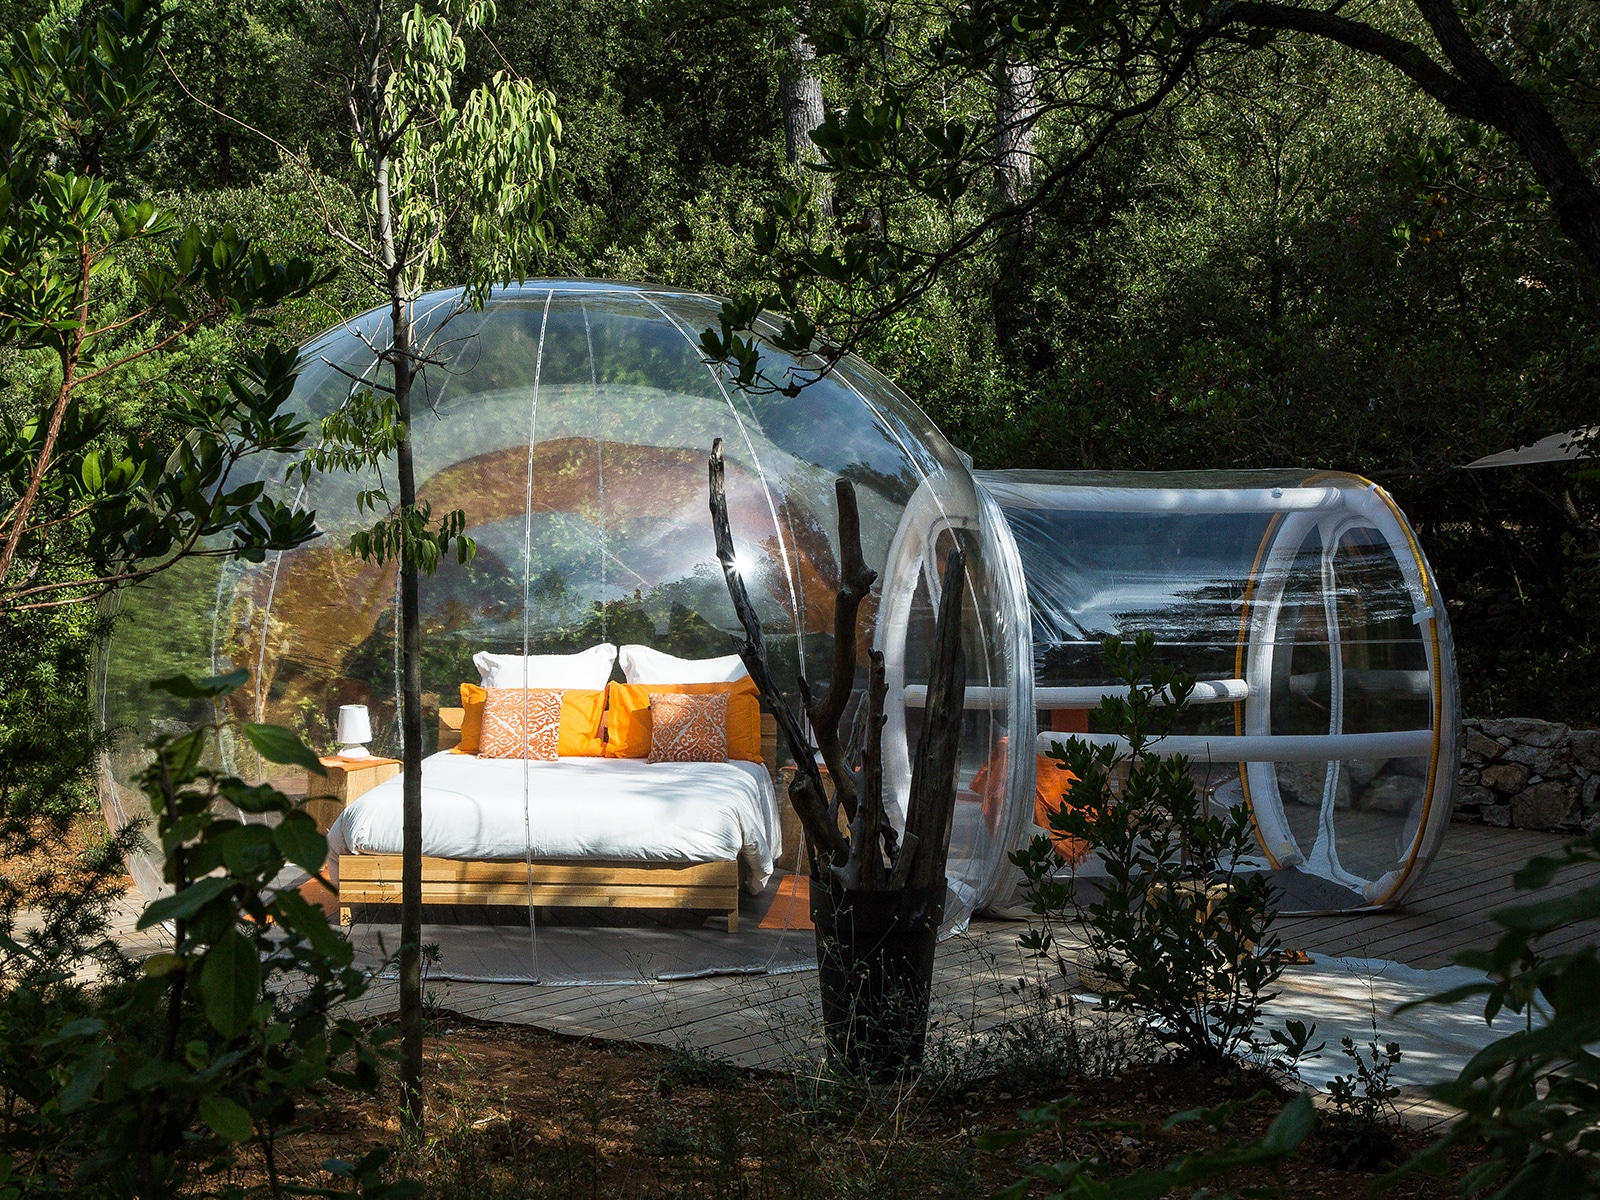 dormir dans une bulle en paca week end insolite bulles des bois. Black Bedroom Furniture Sets. Home Design Ideas